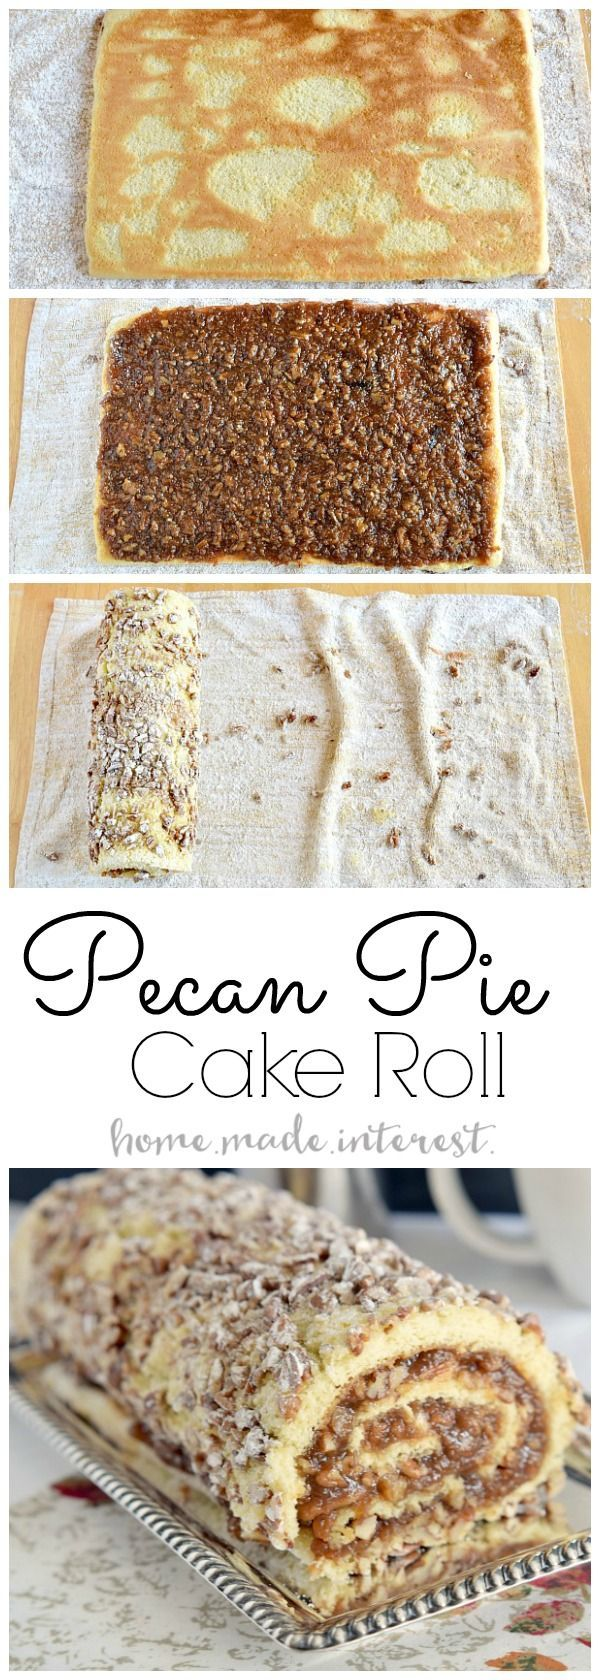 Pecan Pie Cake Roll - Home. Made. Interest.